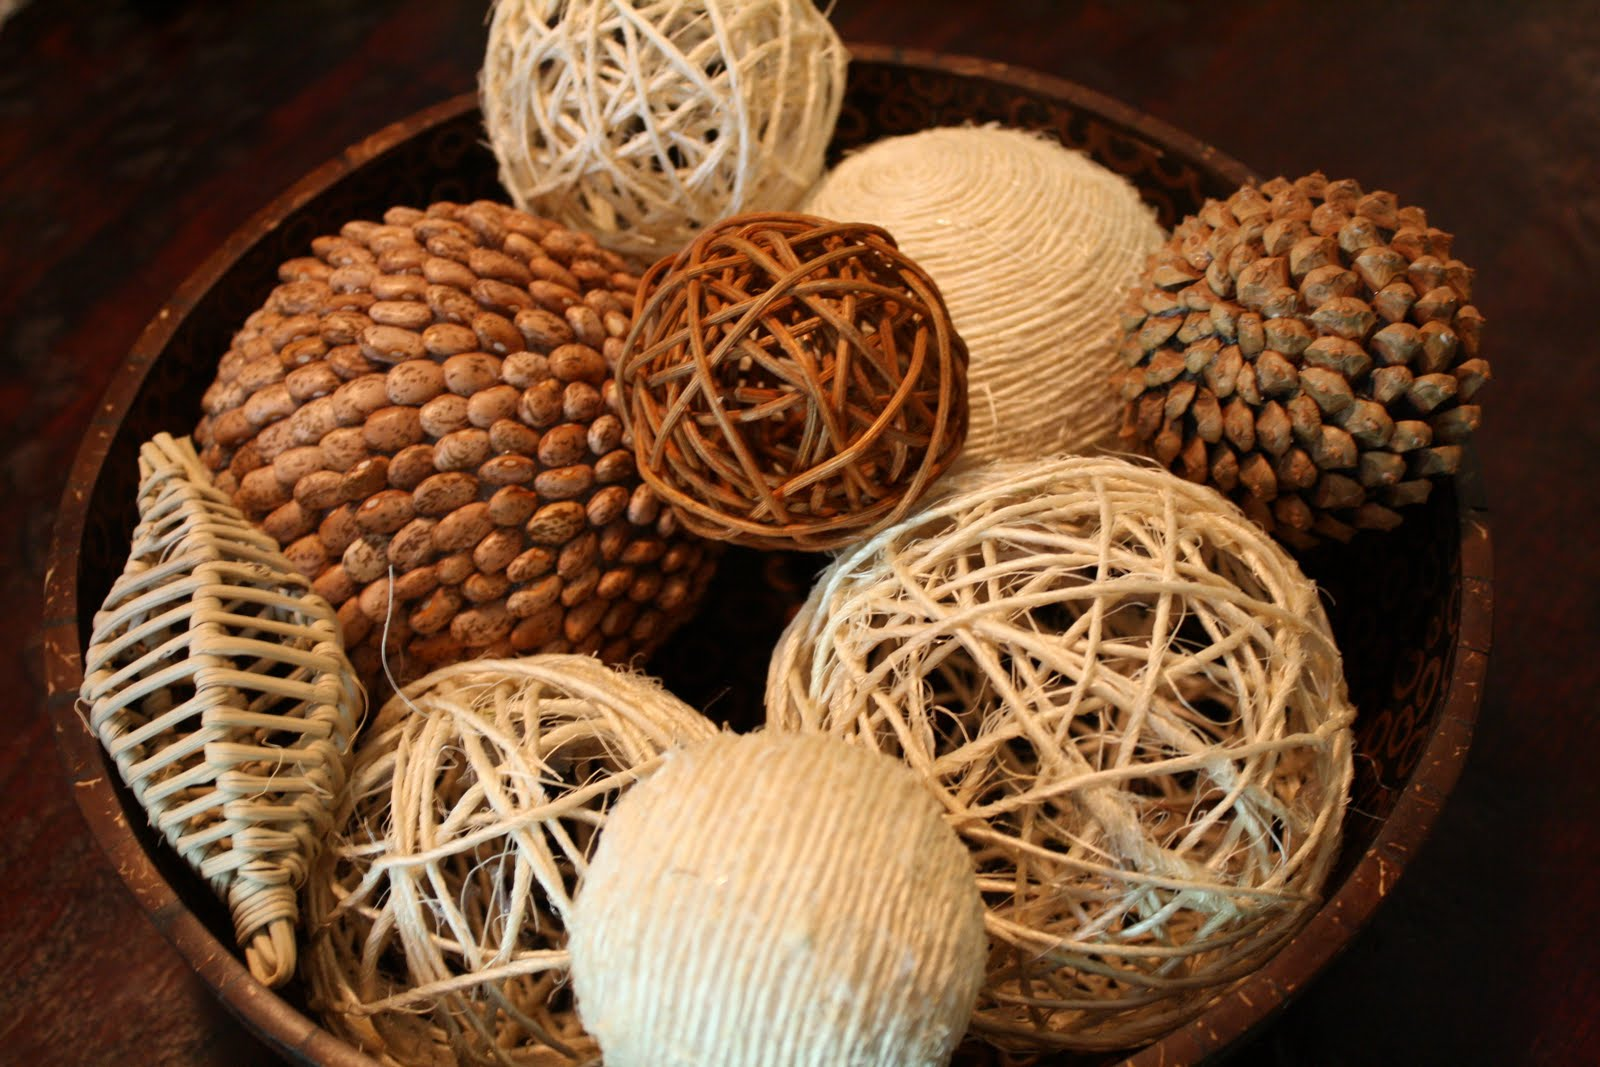 bayberry creek Crafted DIY decorative orbs in brown bowl for table accessories ideas